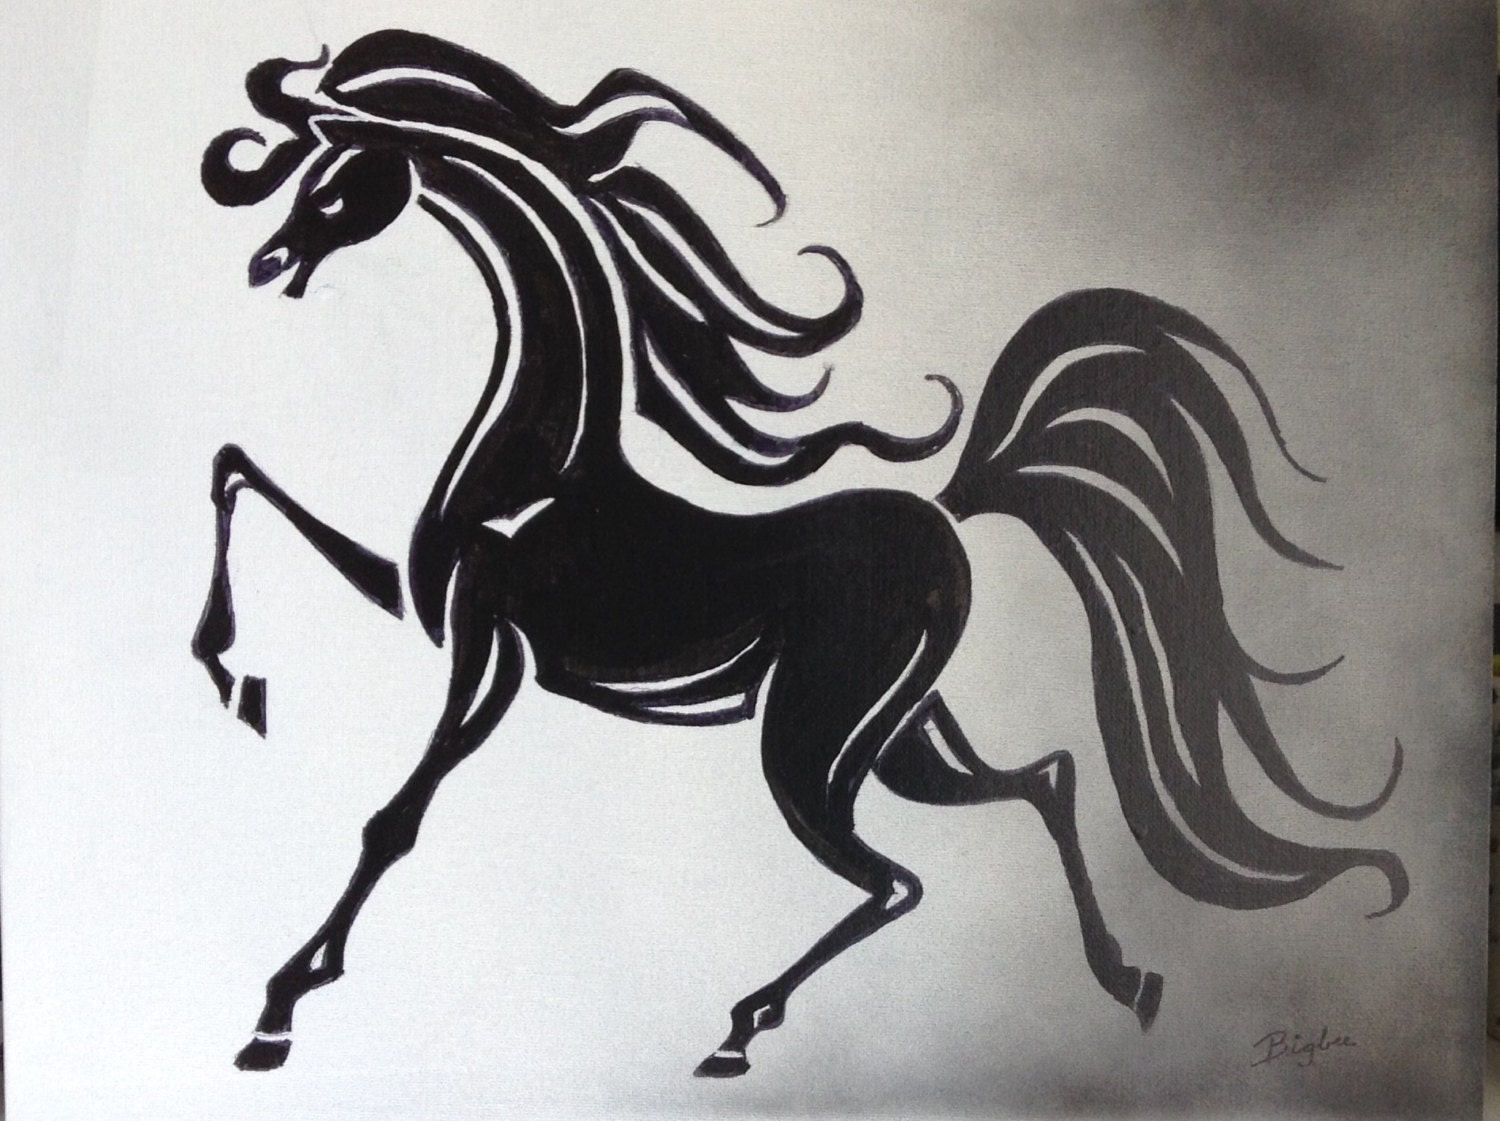 White apron runescape - Black And White Horse Art Painting